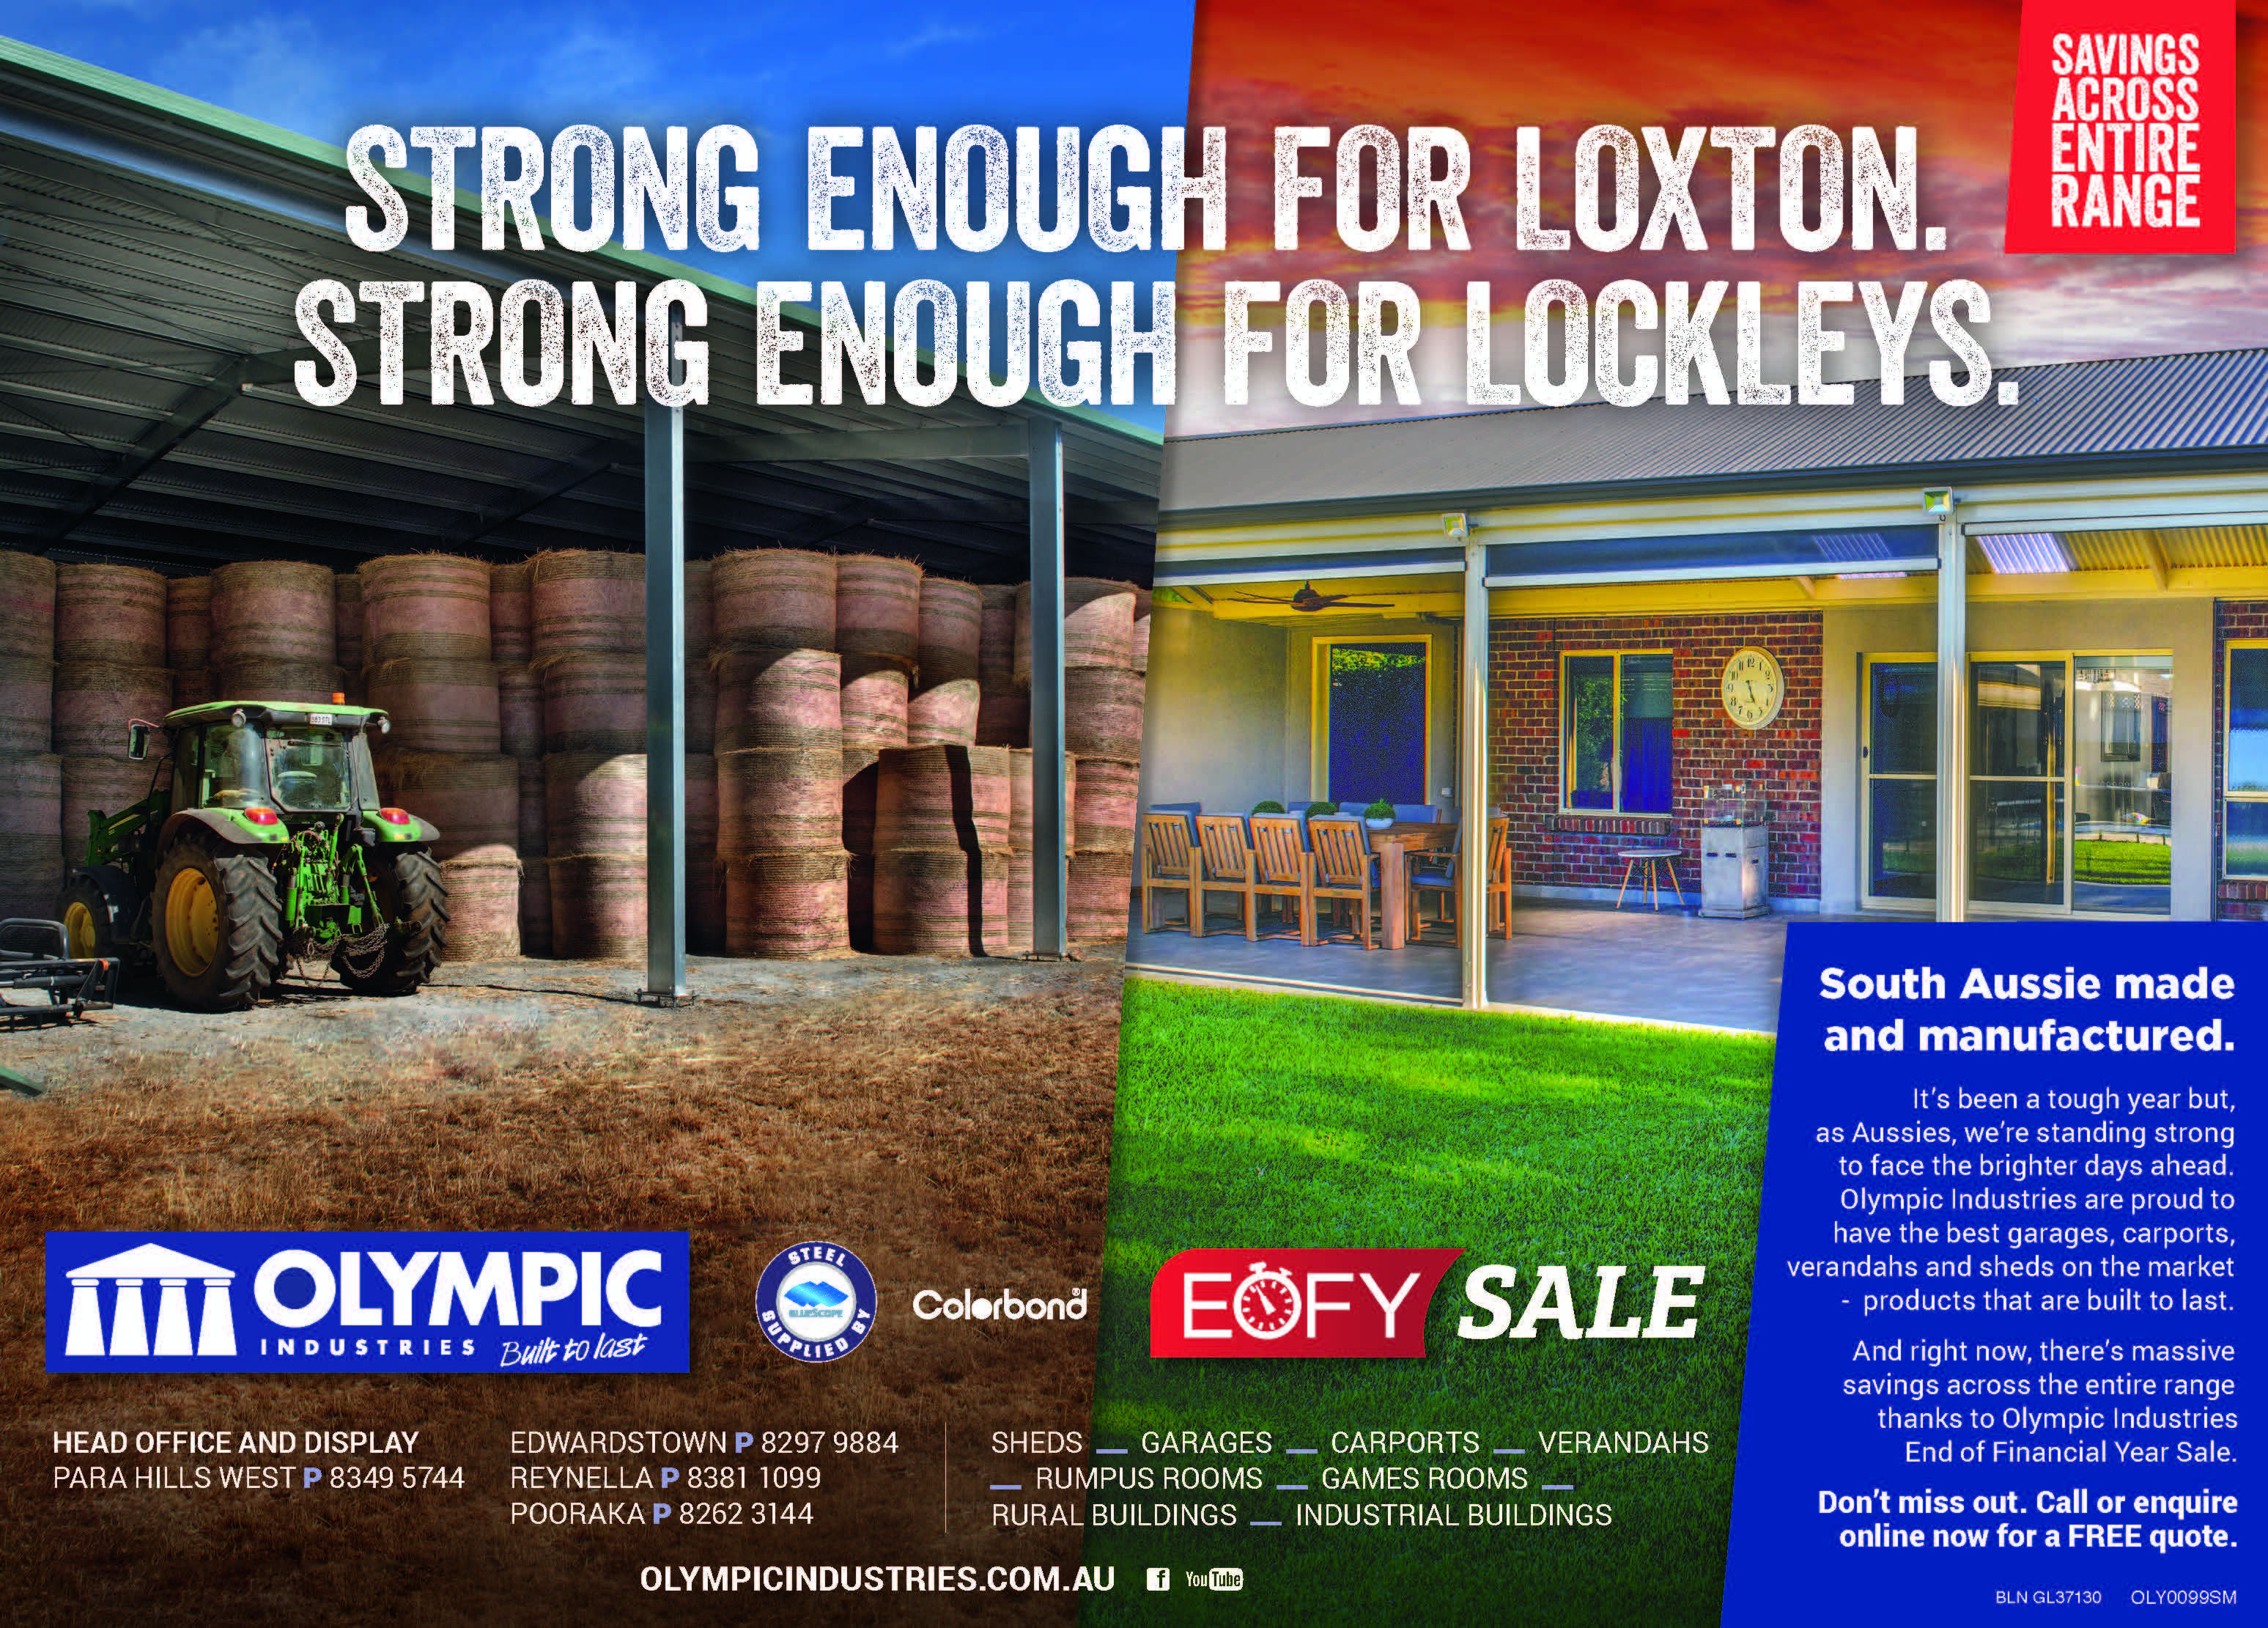 Olympic Industries - Built to Last